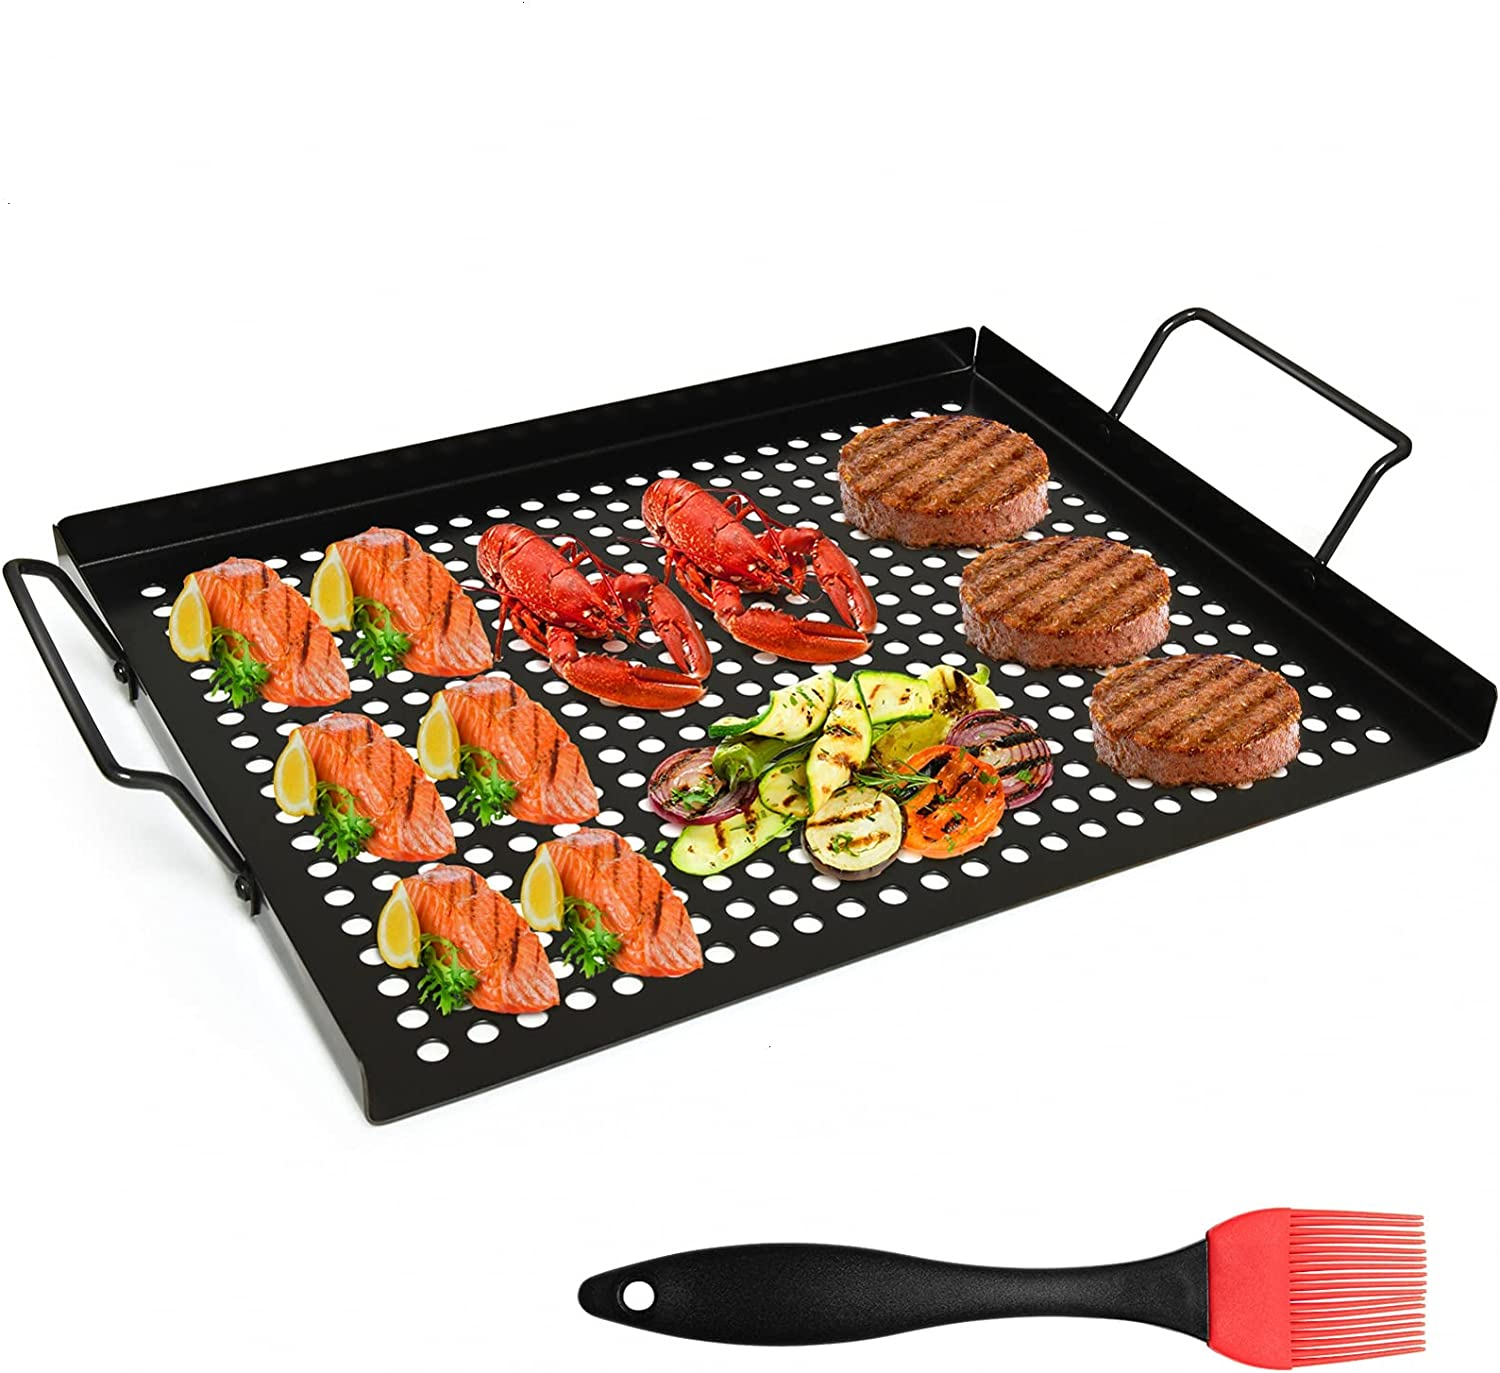 AQUEENLY Grill Basket Nonstick Grill Topper with Holes, BBQ Grill Tray Vegetable Grill Pans for Outdoor Grill, Grill Wok Grill Cookware Grill Accessories for Vegetable, Meat, Fish, Shrimp 17